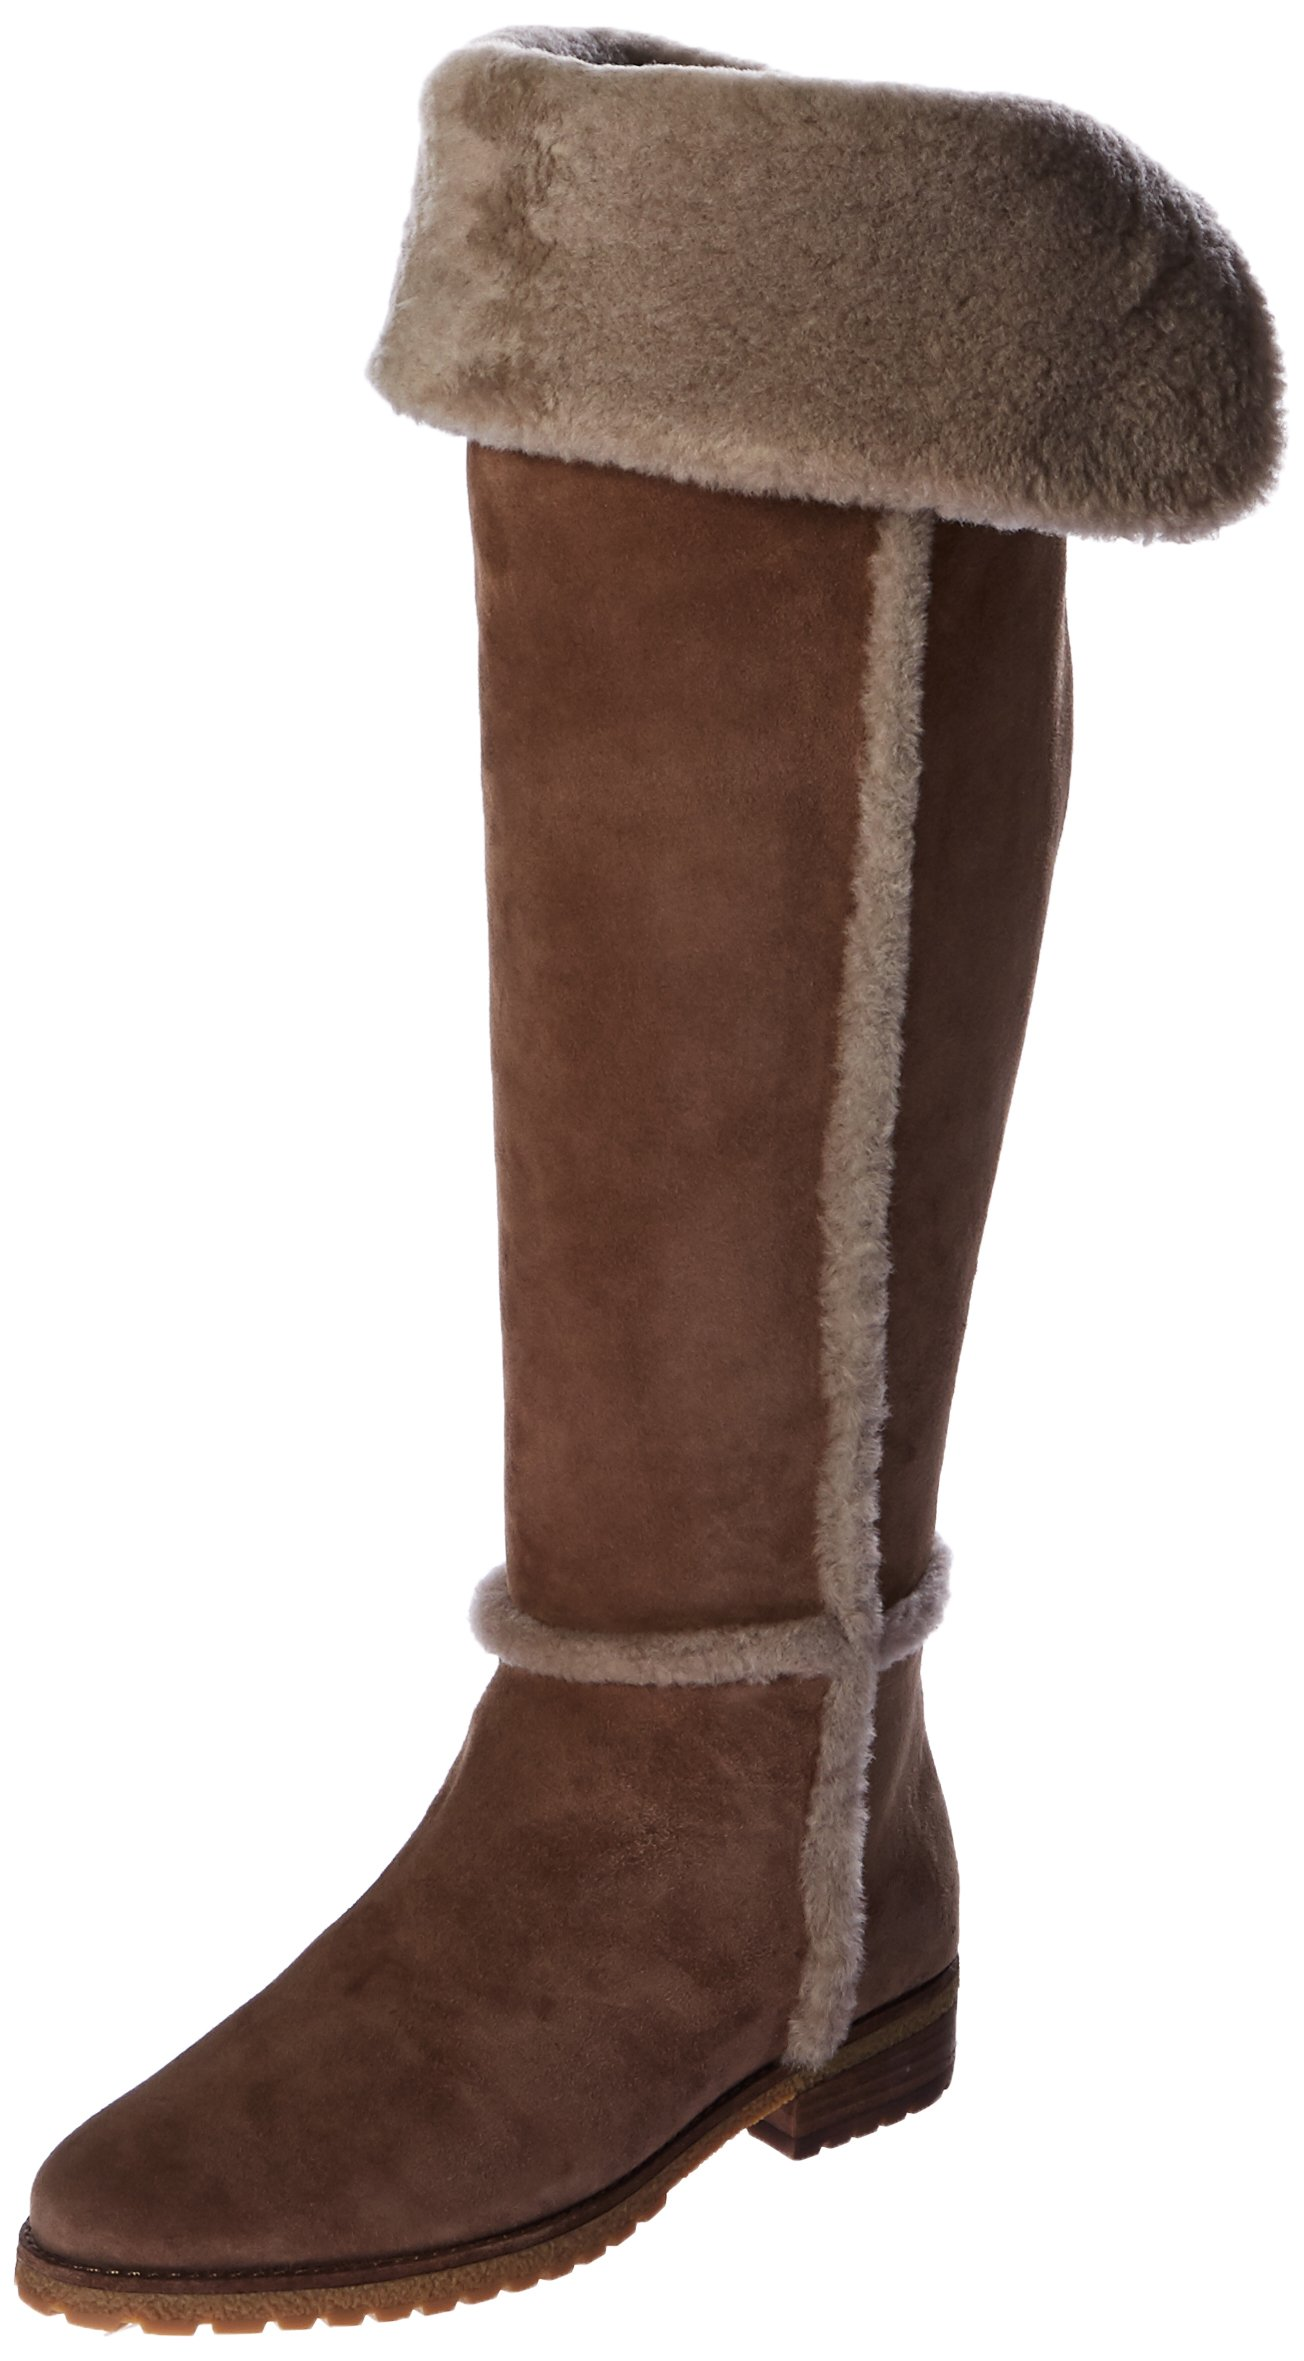 FRYE Women's Tamara Shearling Otk Winter Boot, Taupe, 10 M US